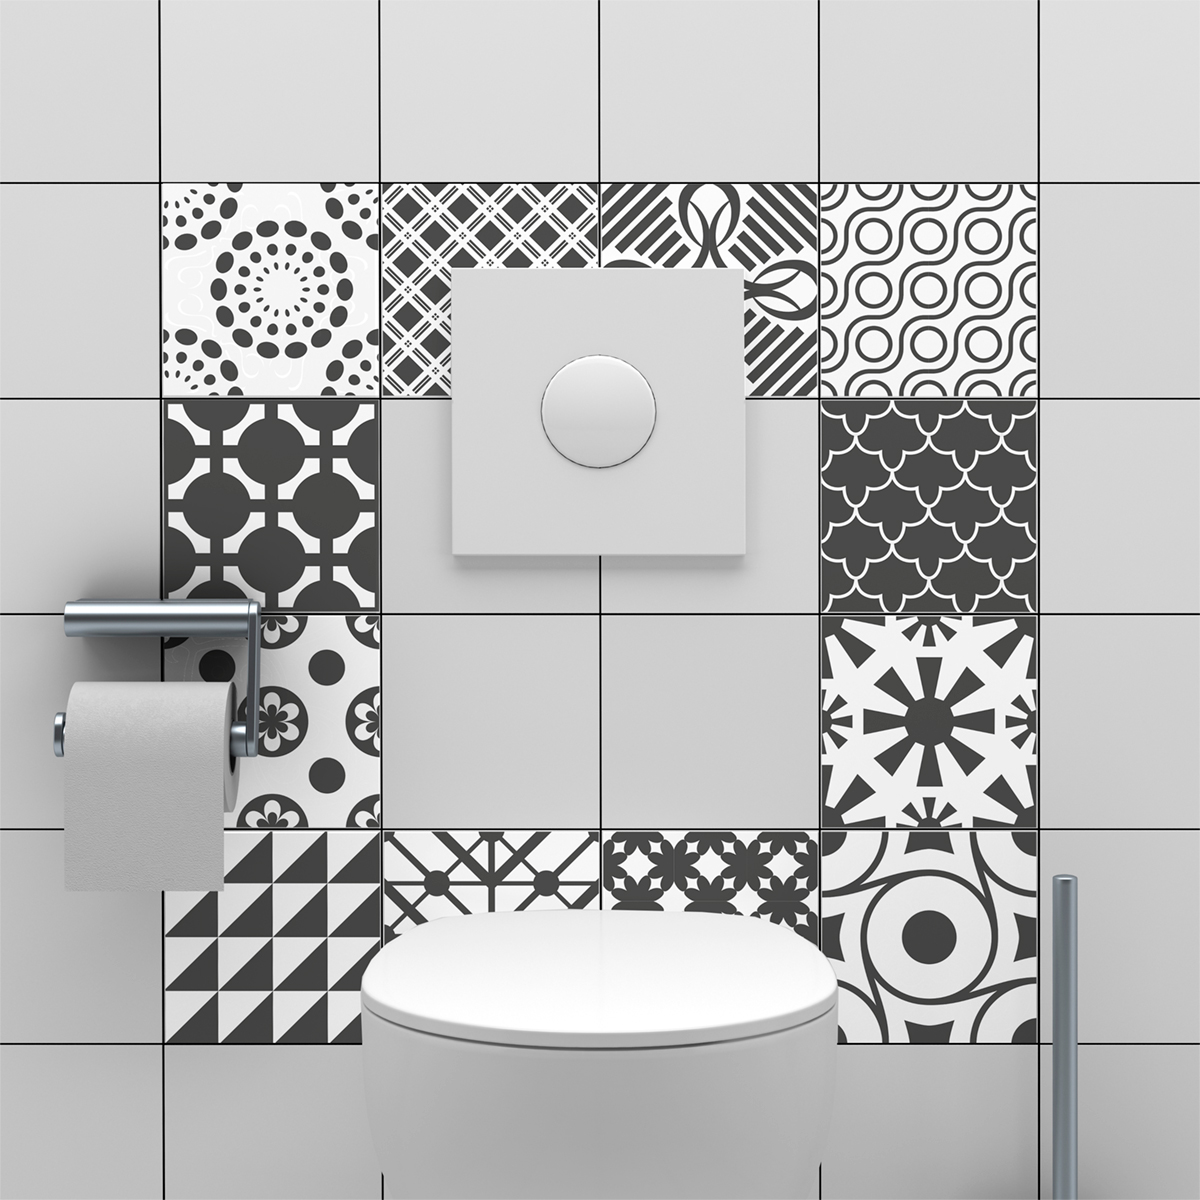 24 stickers carreaux de ciment nuances de gris lindos salle de bain et wc salle de bain. Black Bedroom Furniture Sets. Home Design Ideas